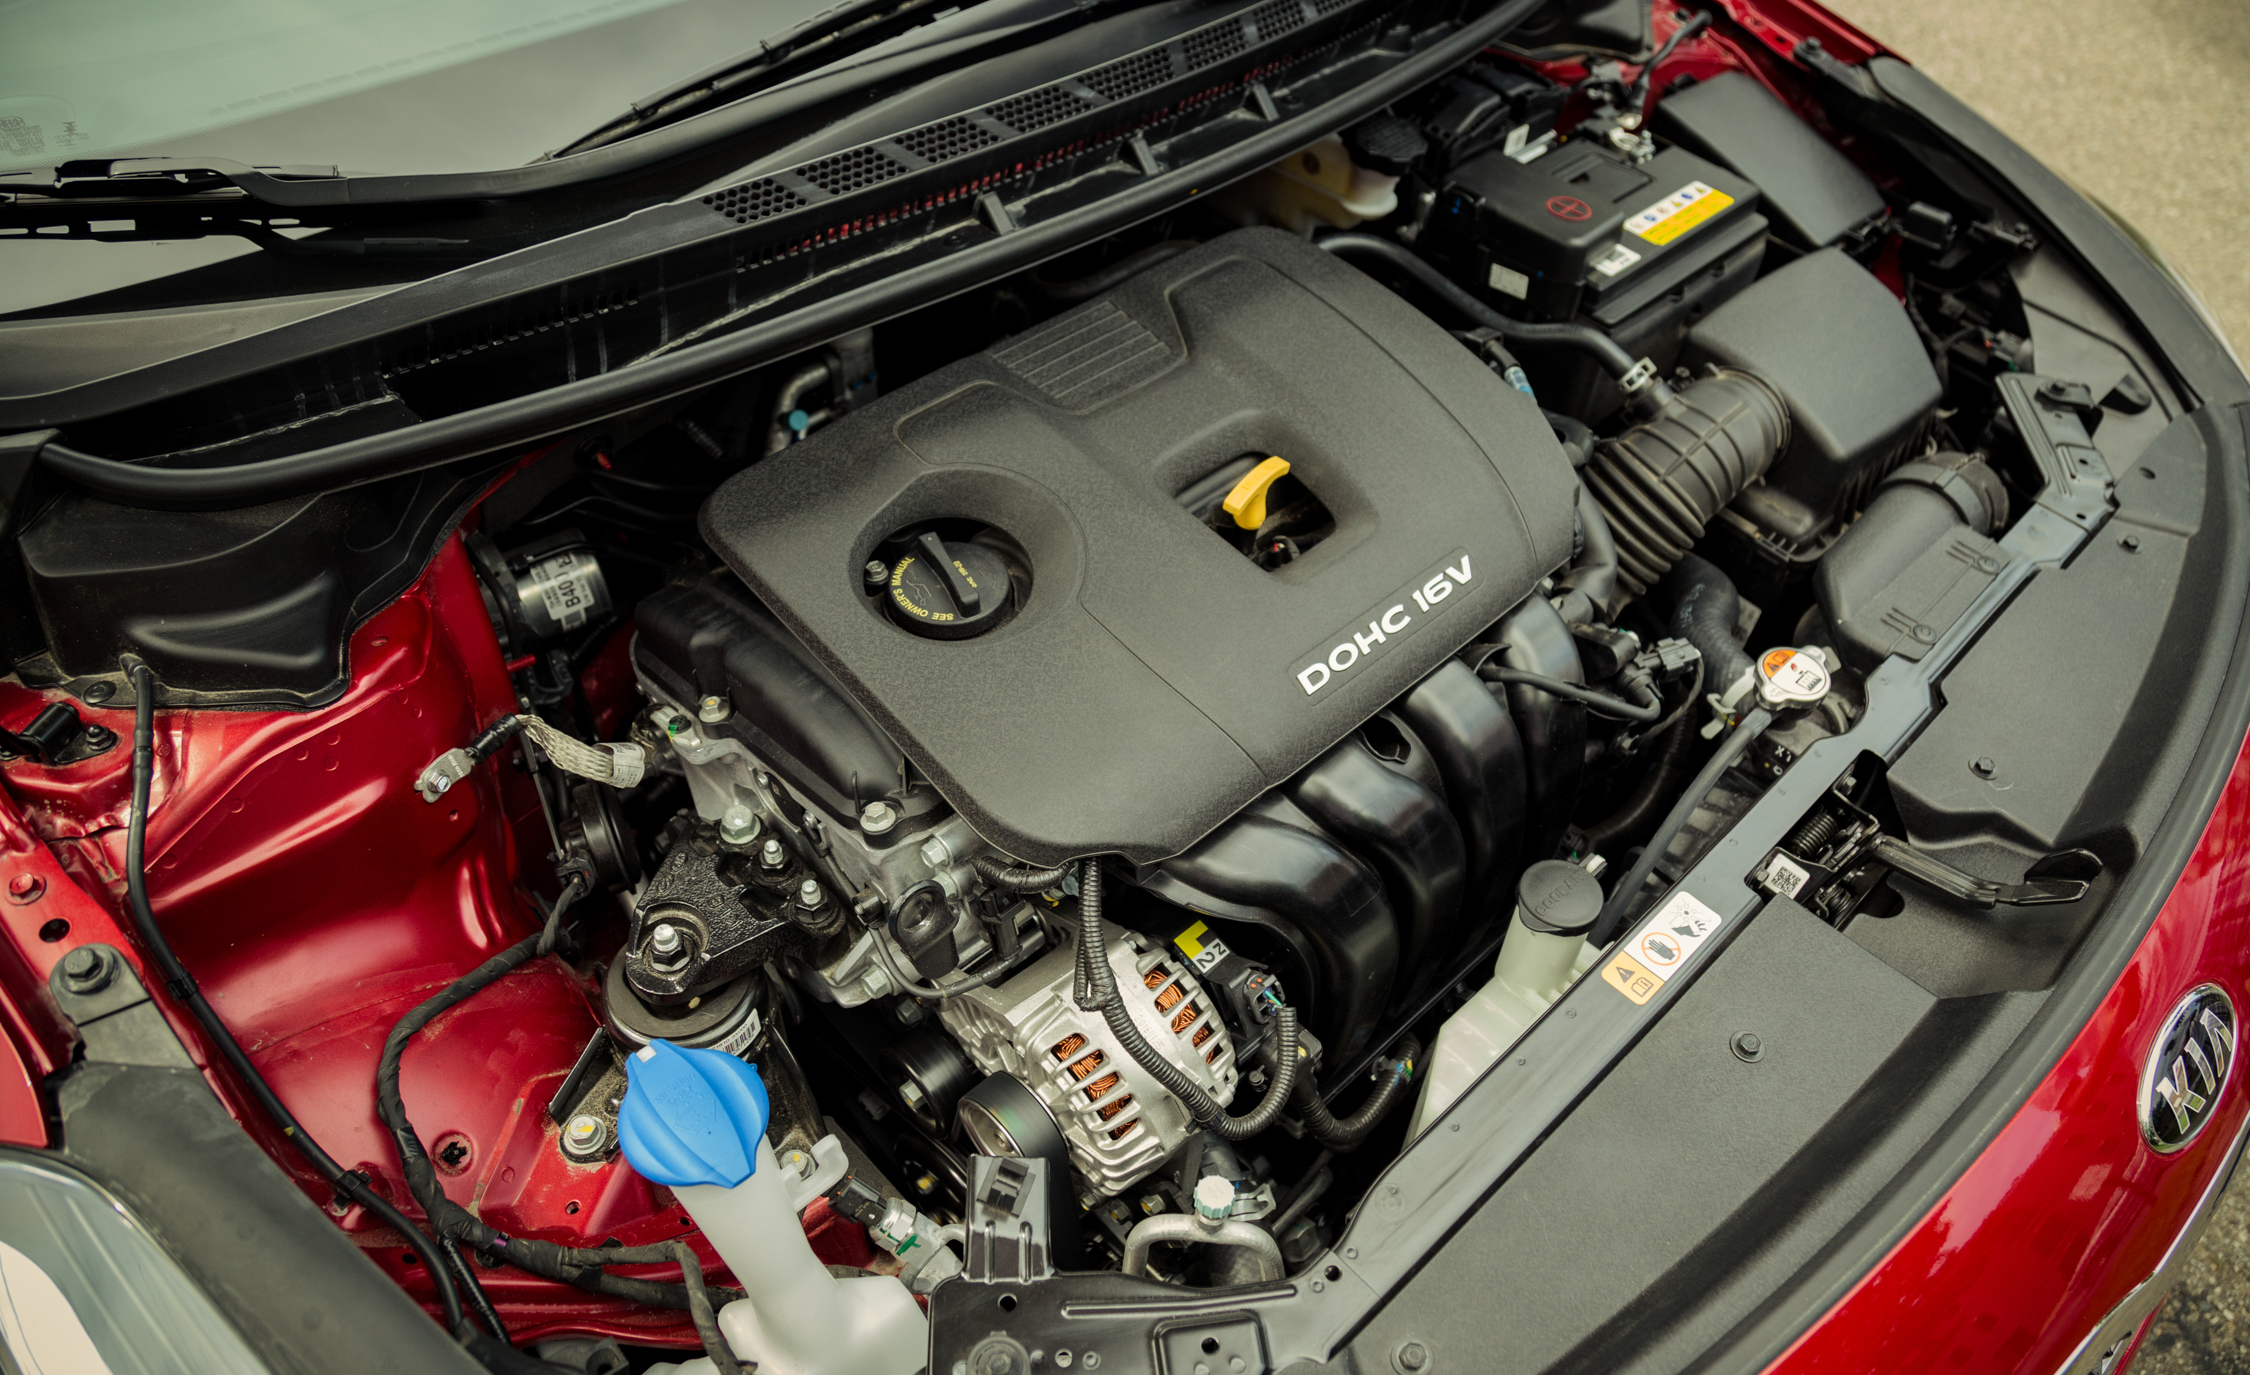 2017 Kia Forte S Inline 4 Engine (Photo 11 of 13)